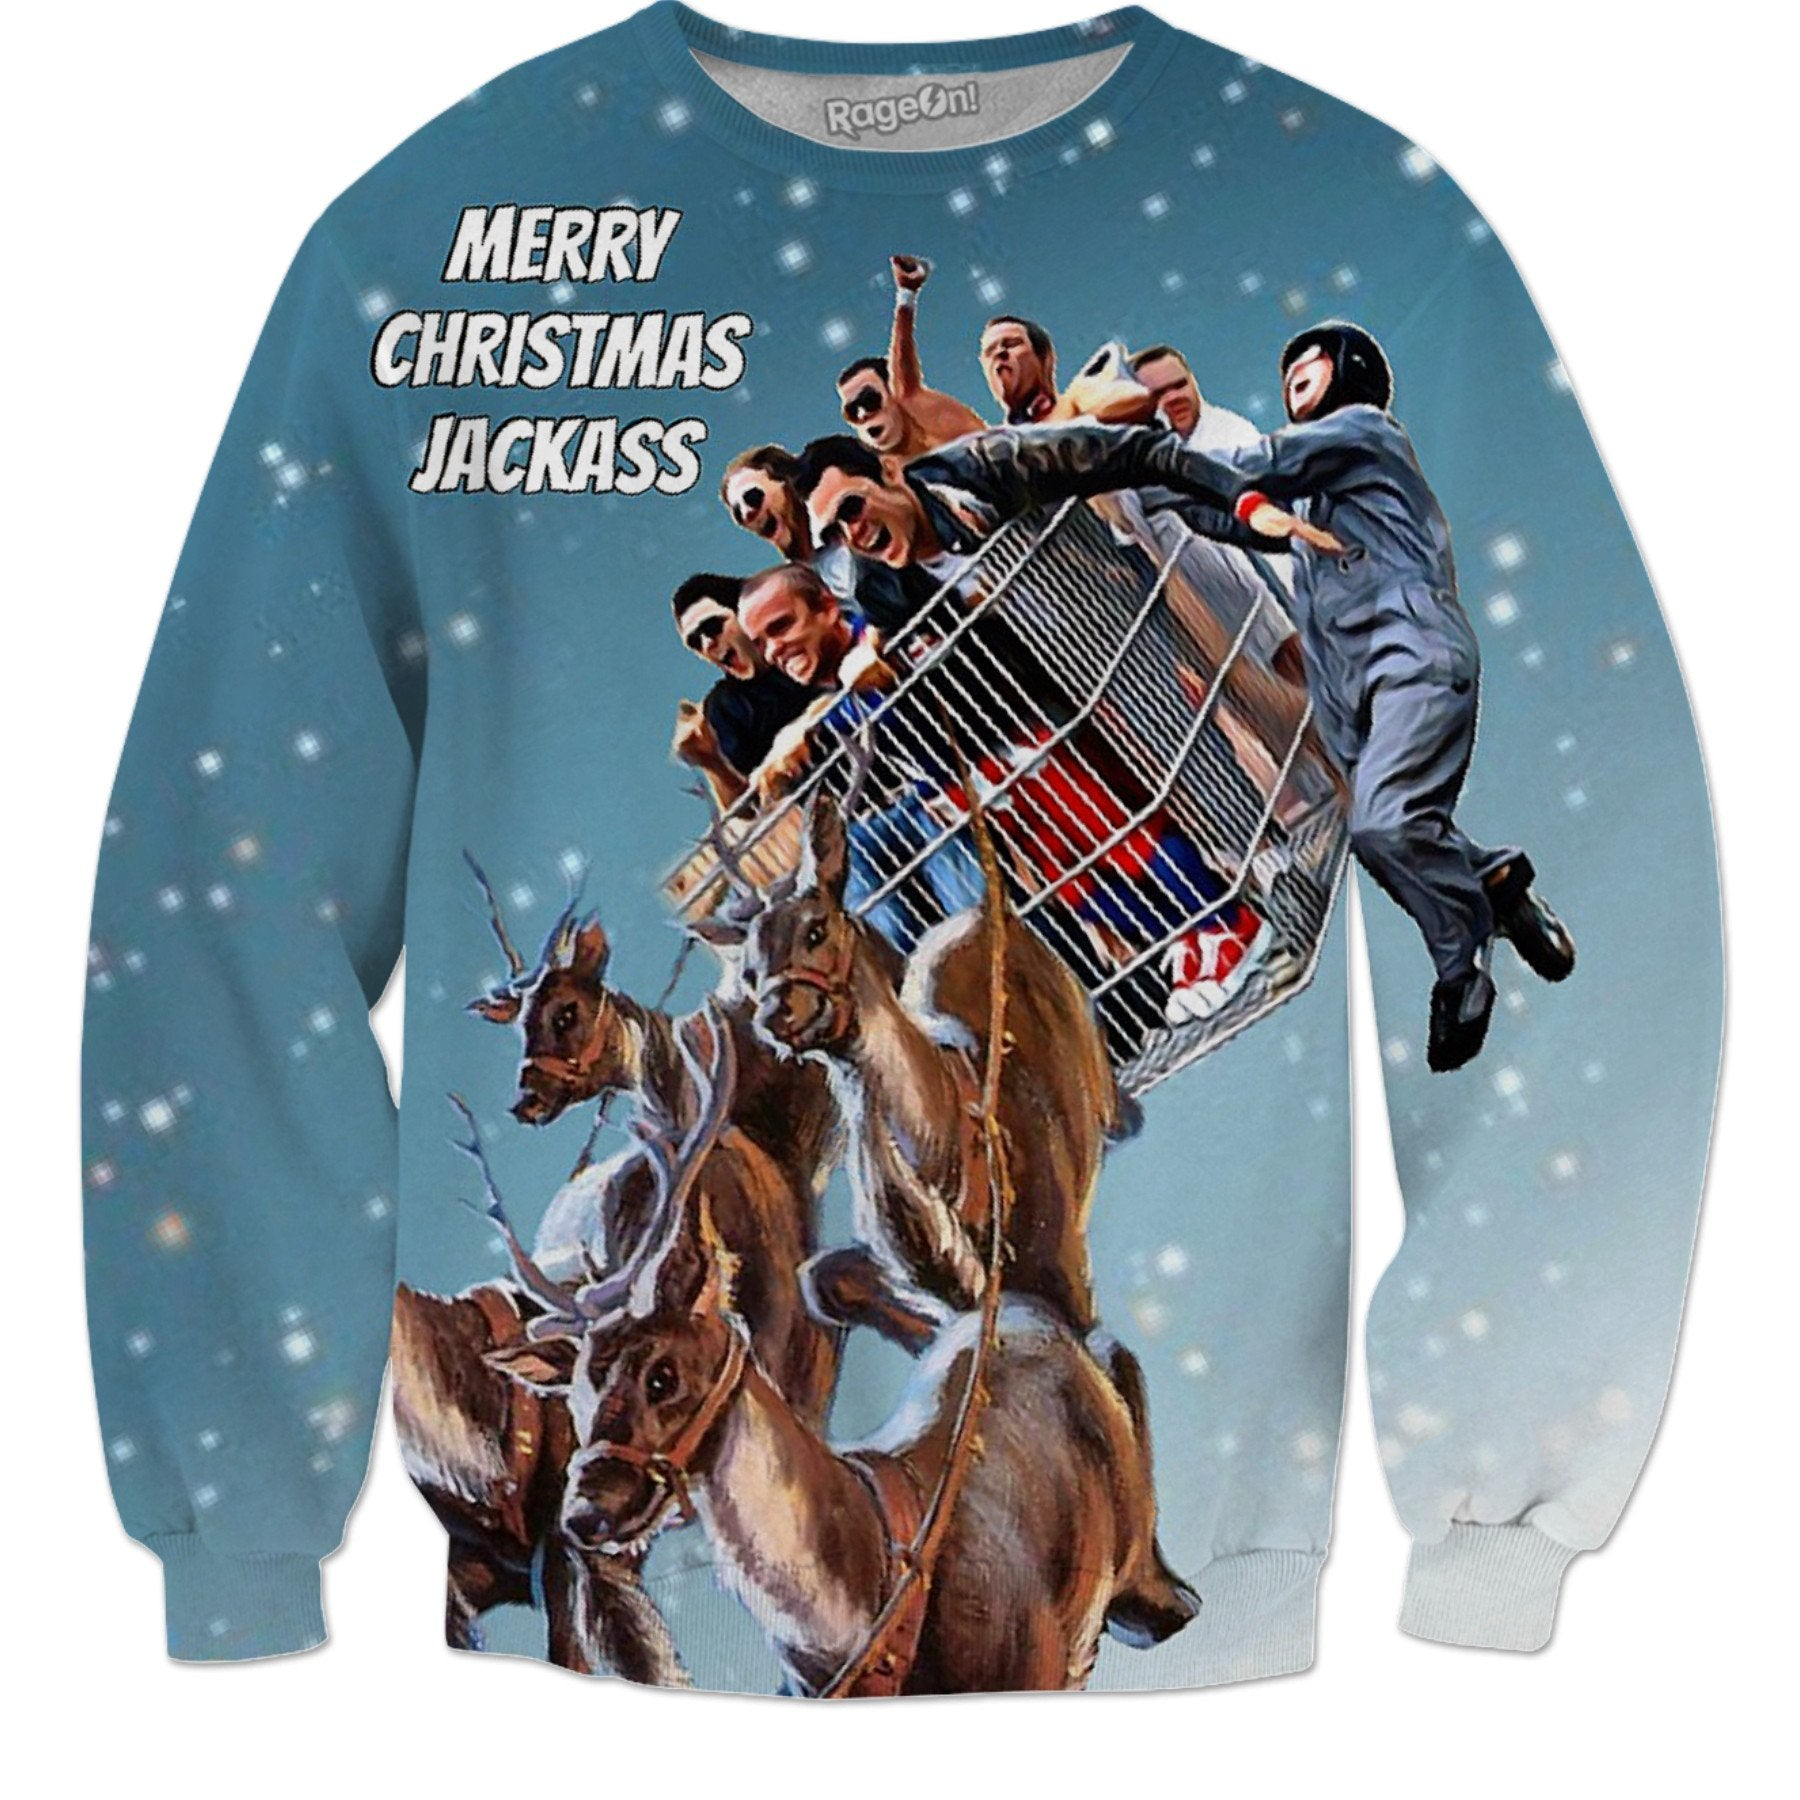 Merry Christmas Jackass, Christmas Sweater